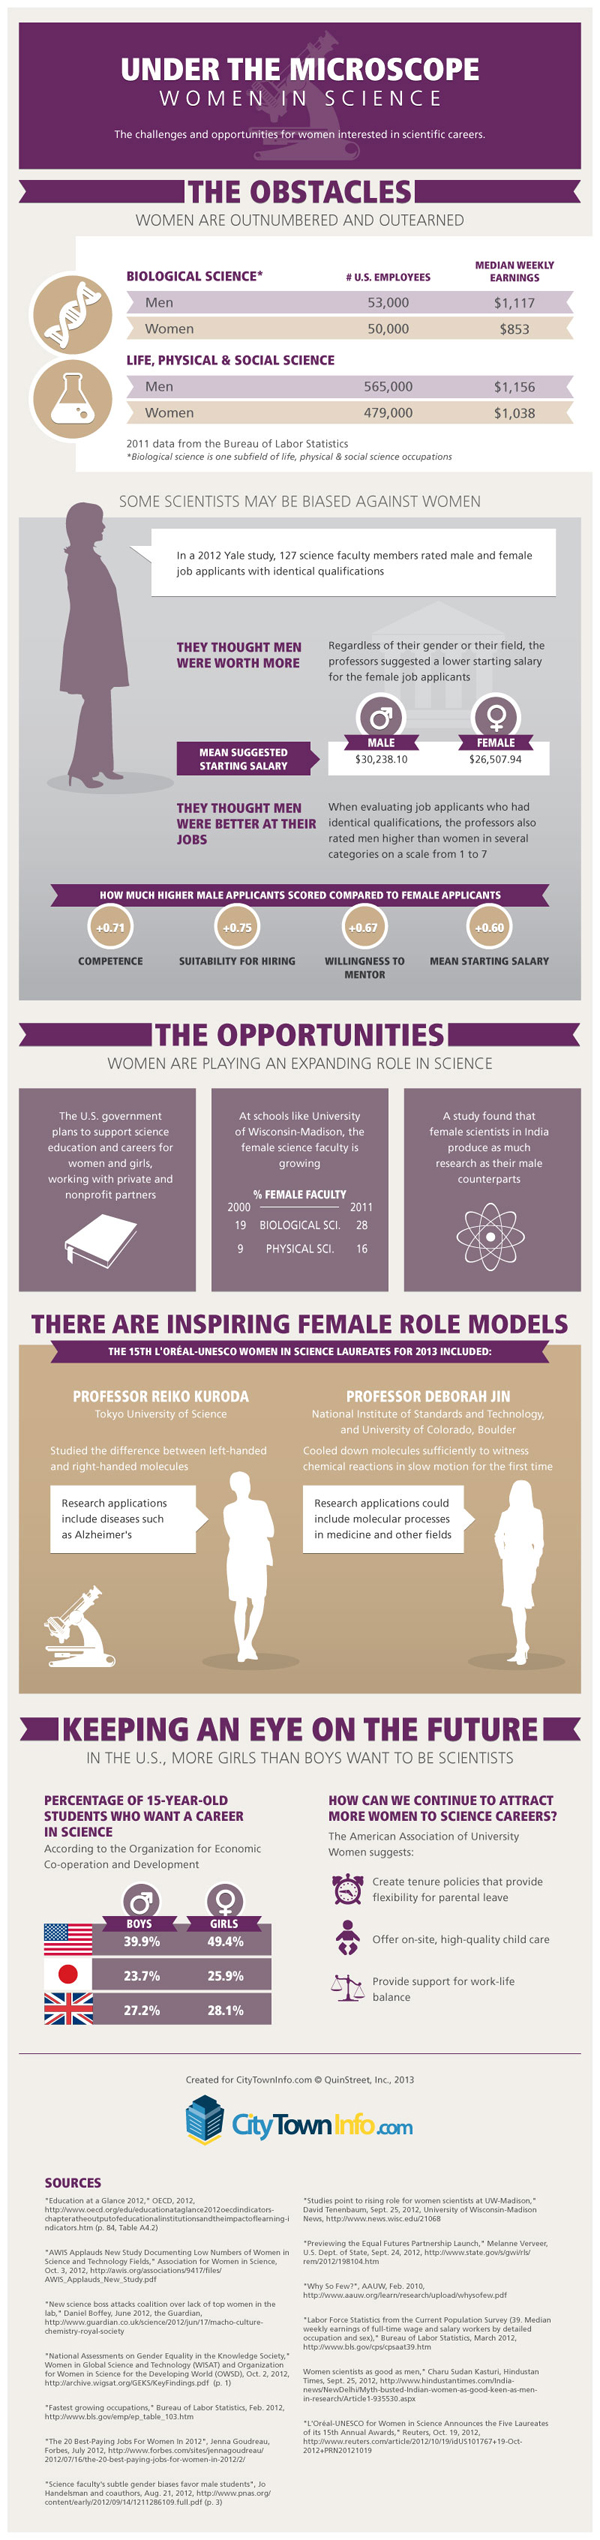 Women Demographic in Science Industry